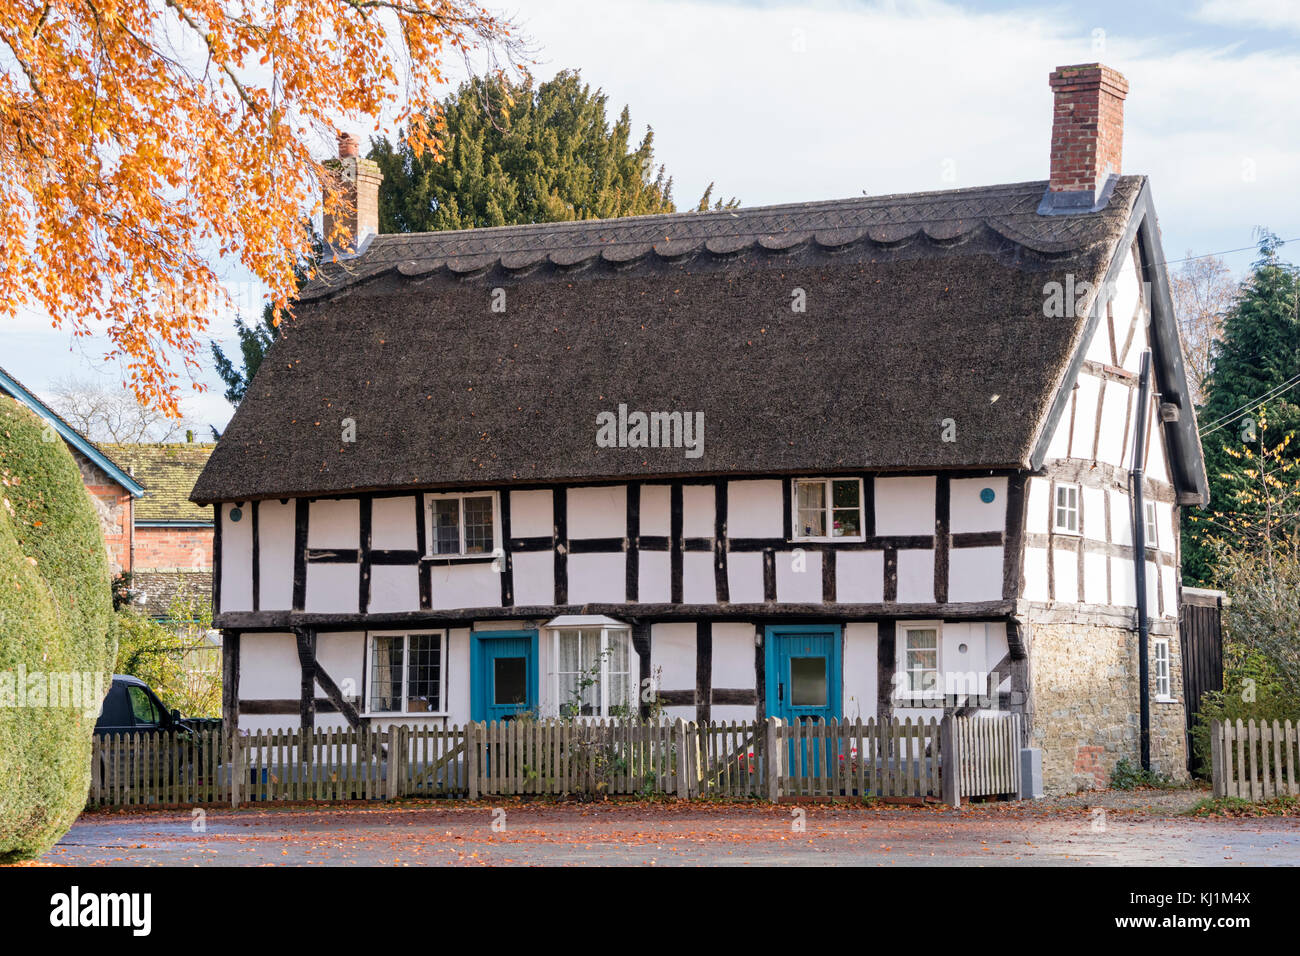 The ancient Yew hedge and Timber-framed cottage in the village of Brampton Bryan, Herefordshire - Stock Image